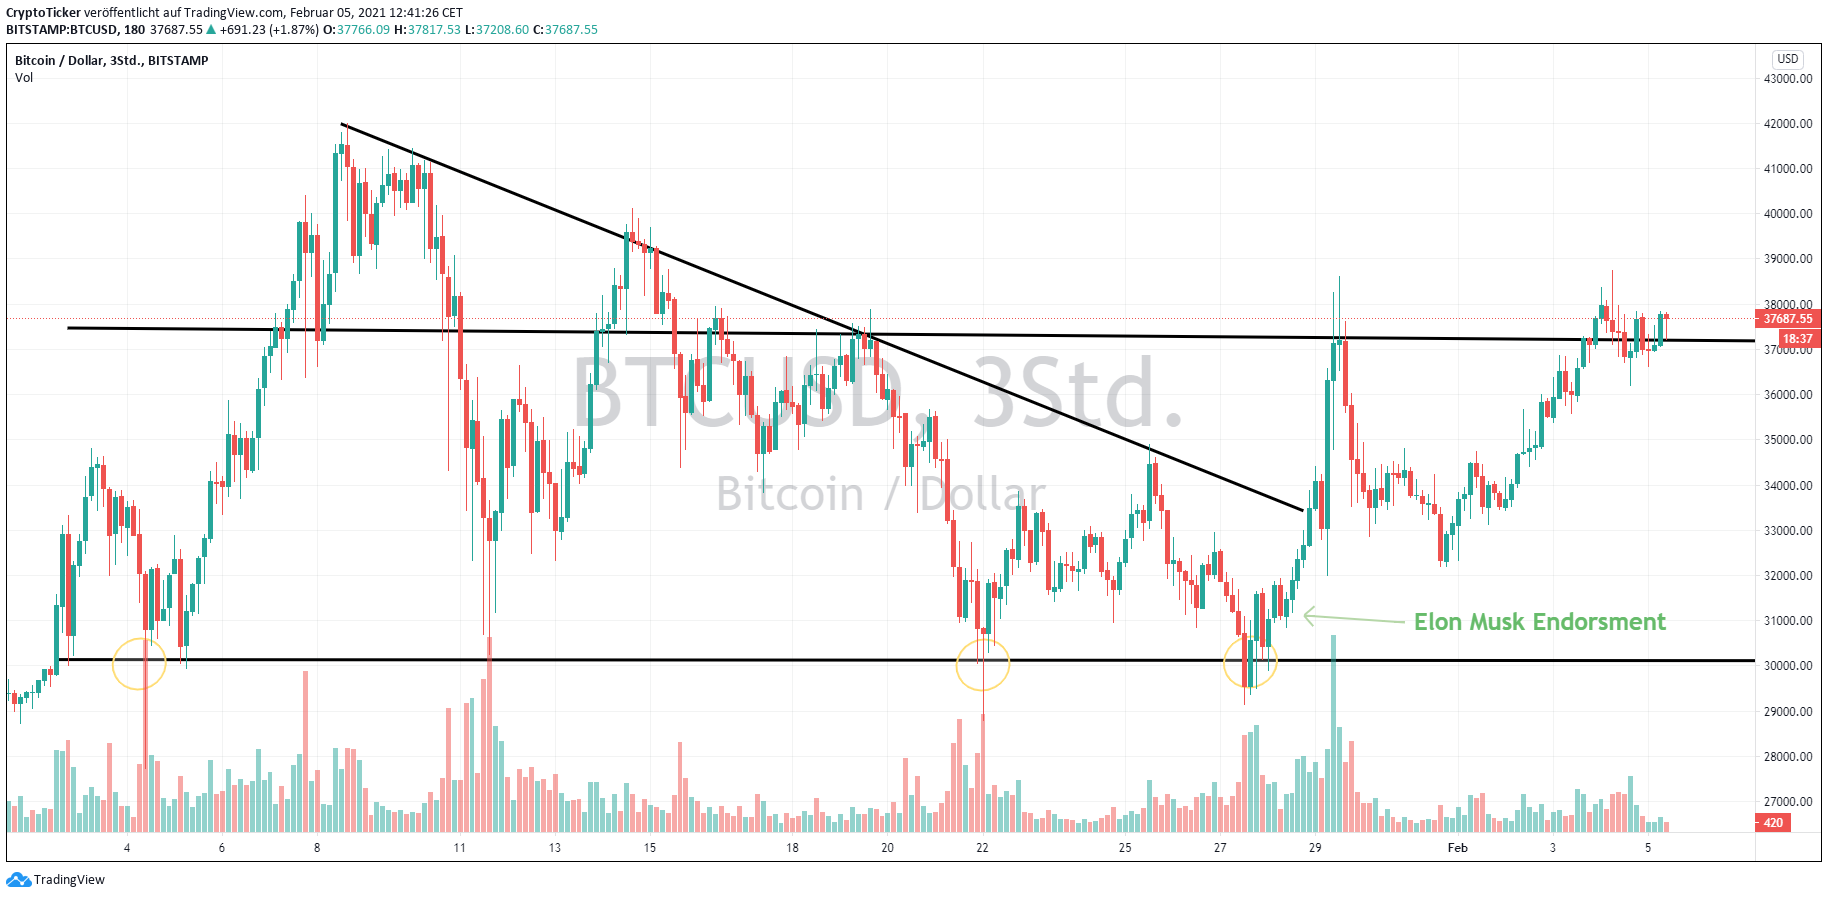 BTC/USD 3-hours chart showing BTC's current Price-Action